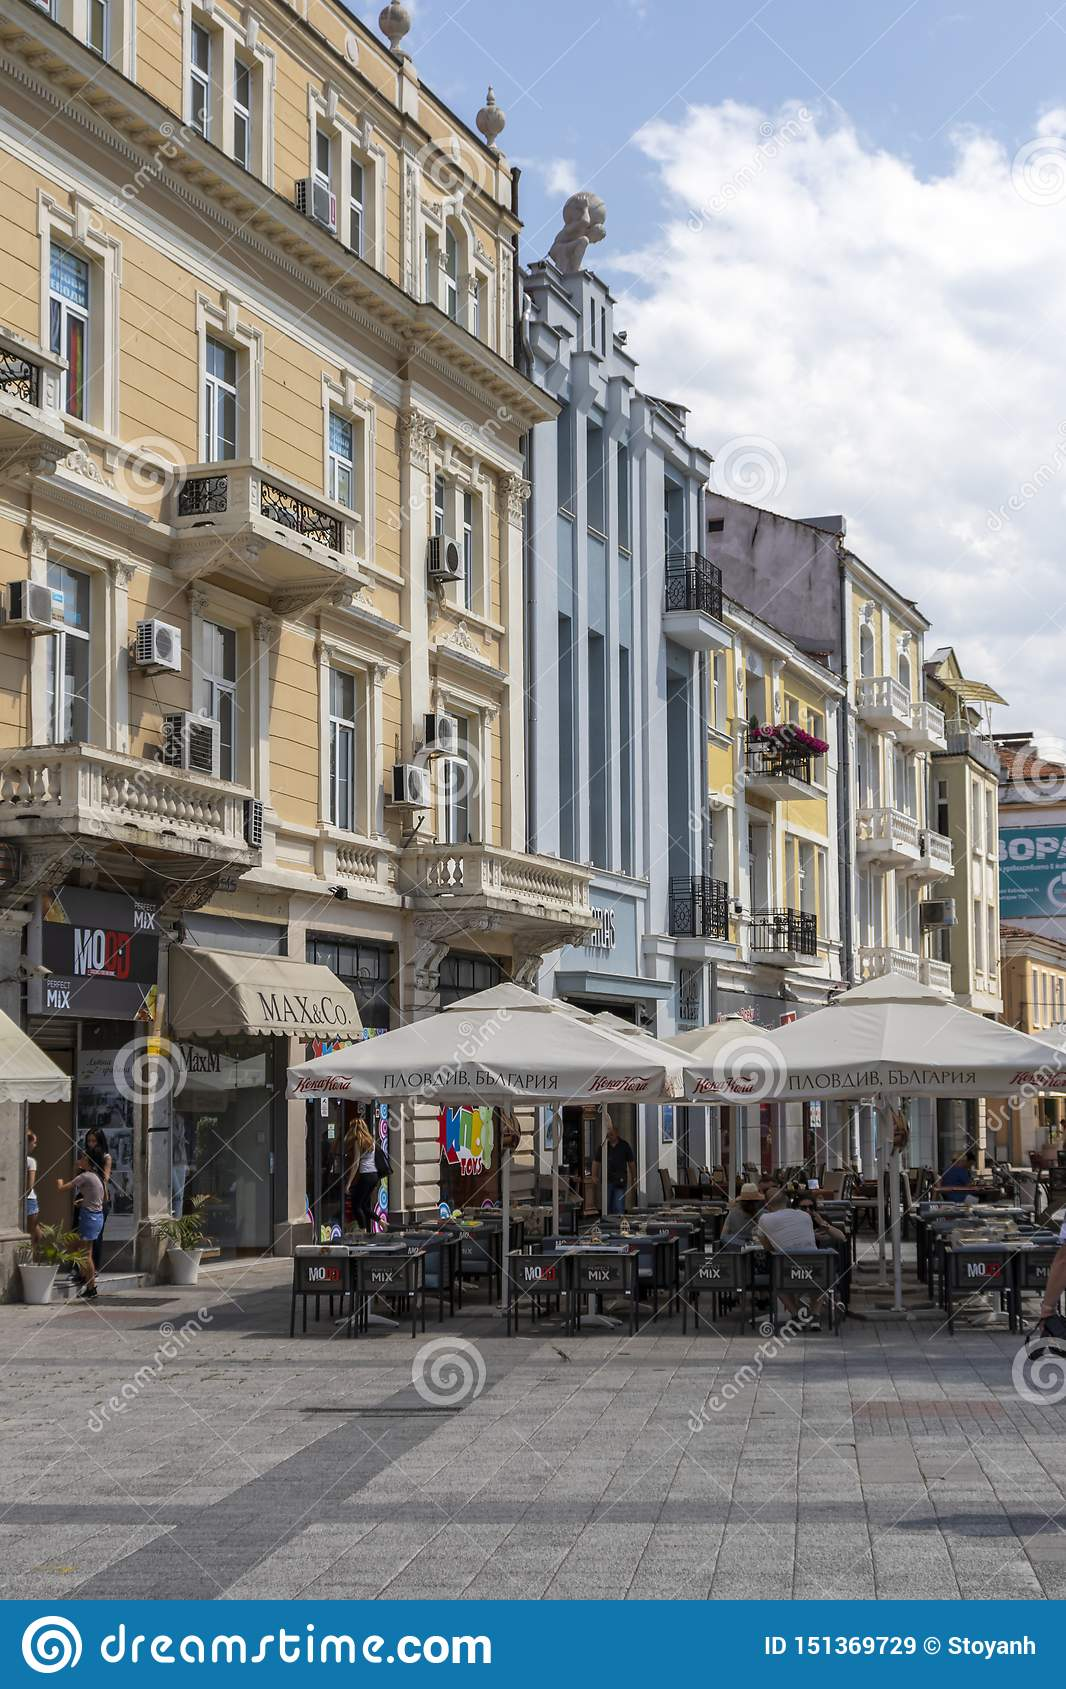 Walking people at Pedestrian streets at the center of city of Plovdiv, Bulgaria